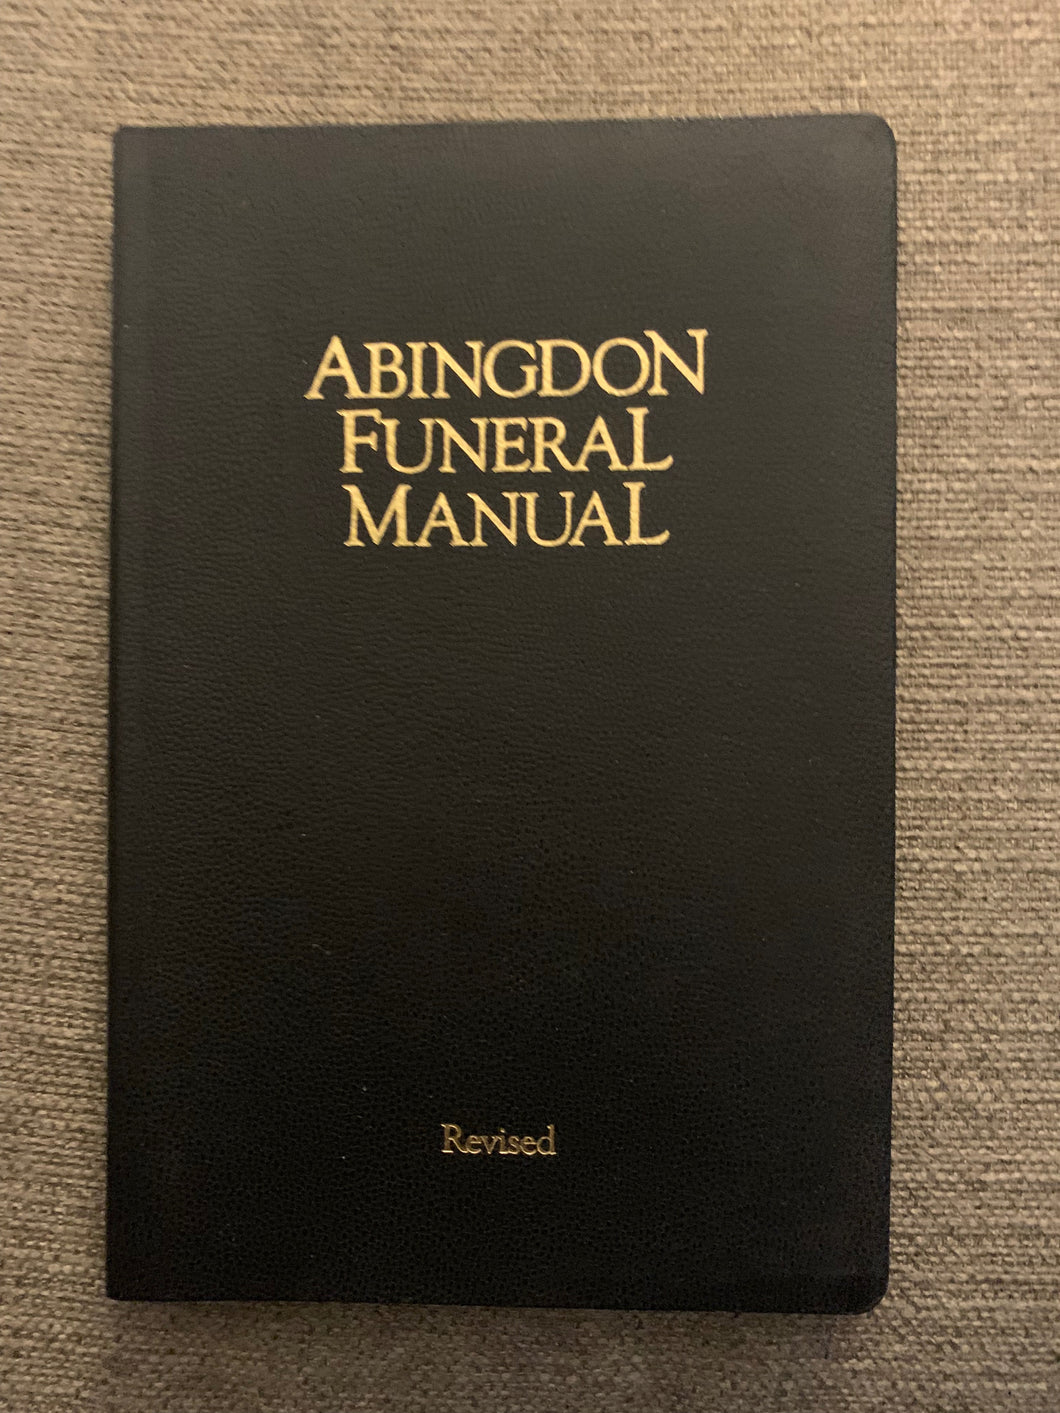 Abingdon Funeral Manual by Perry H. Biddle